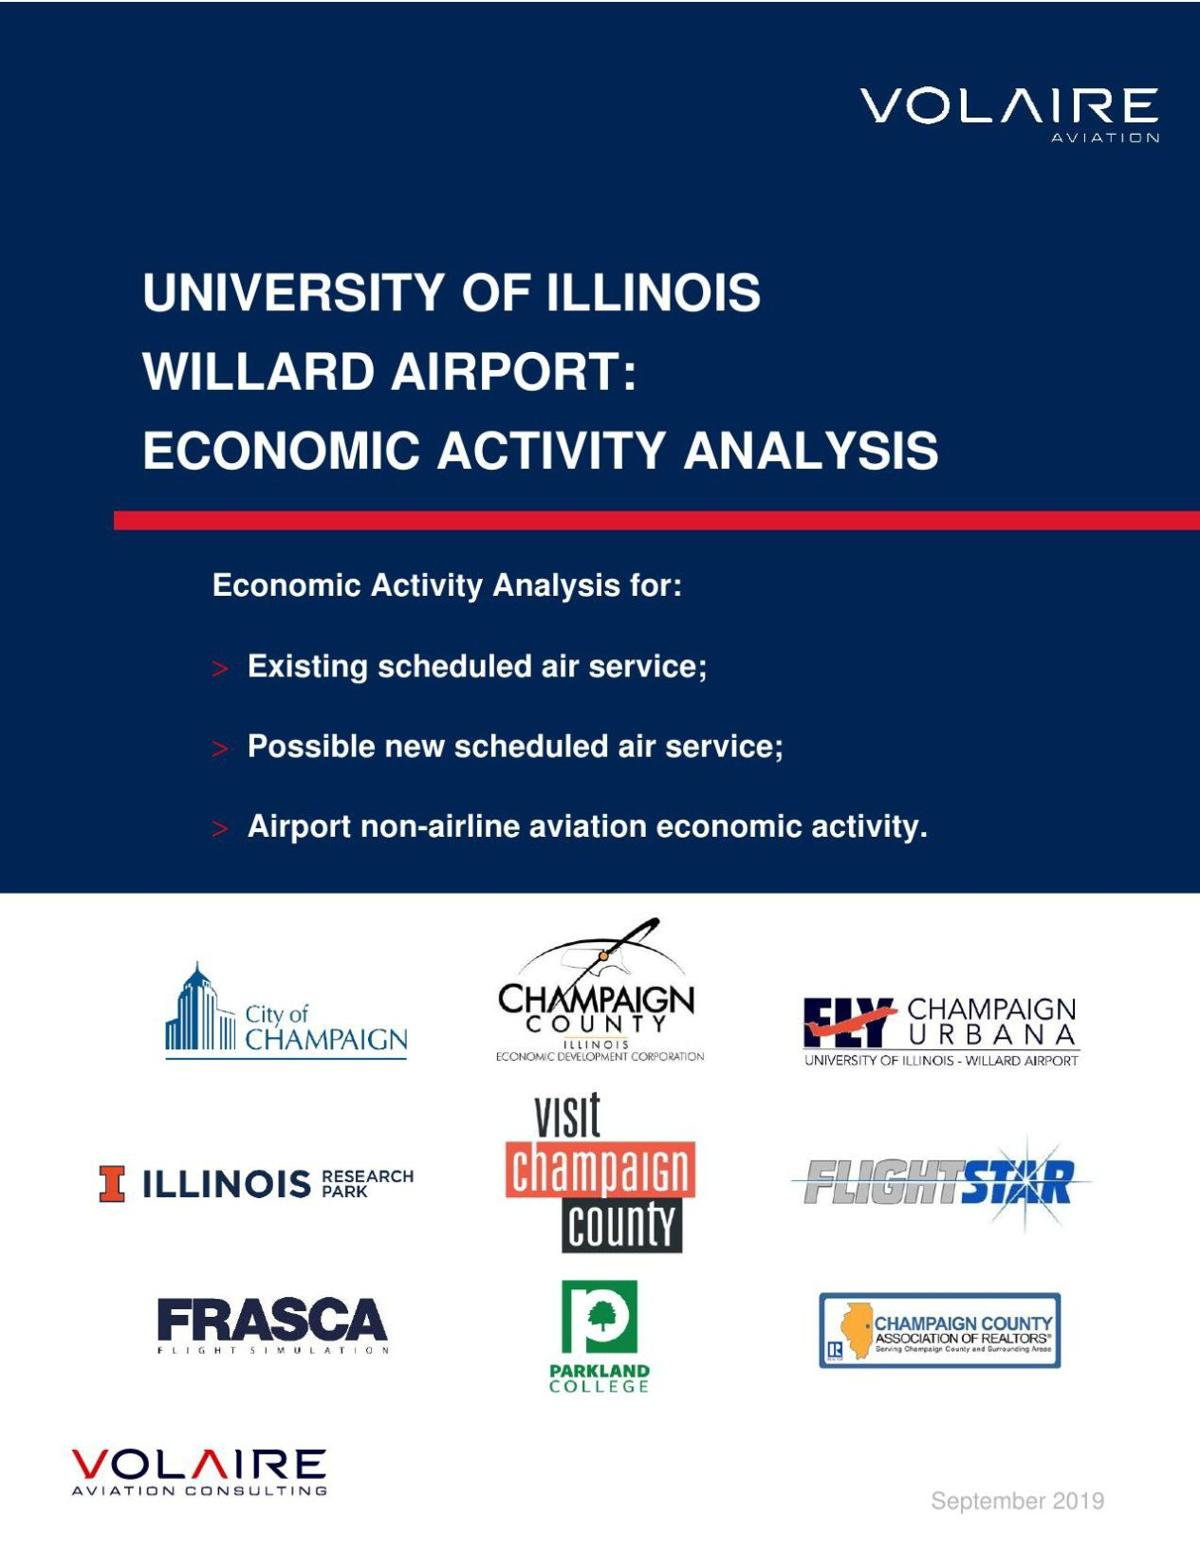 PDF: Willard Airport economic activity analysis, September 2019